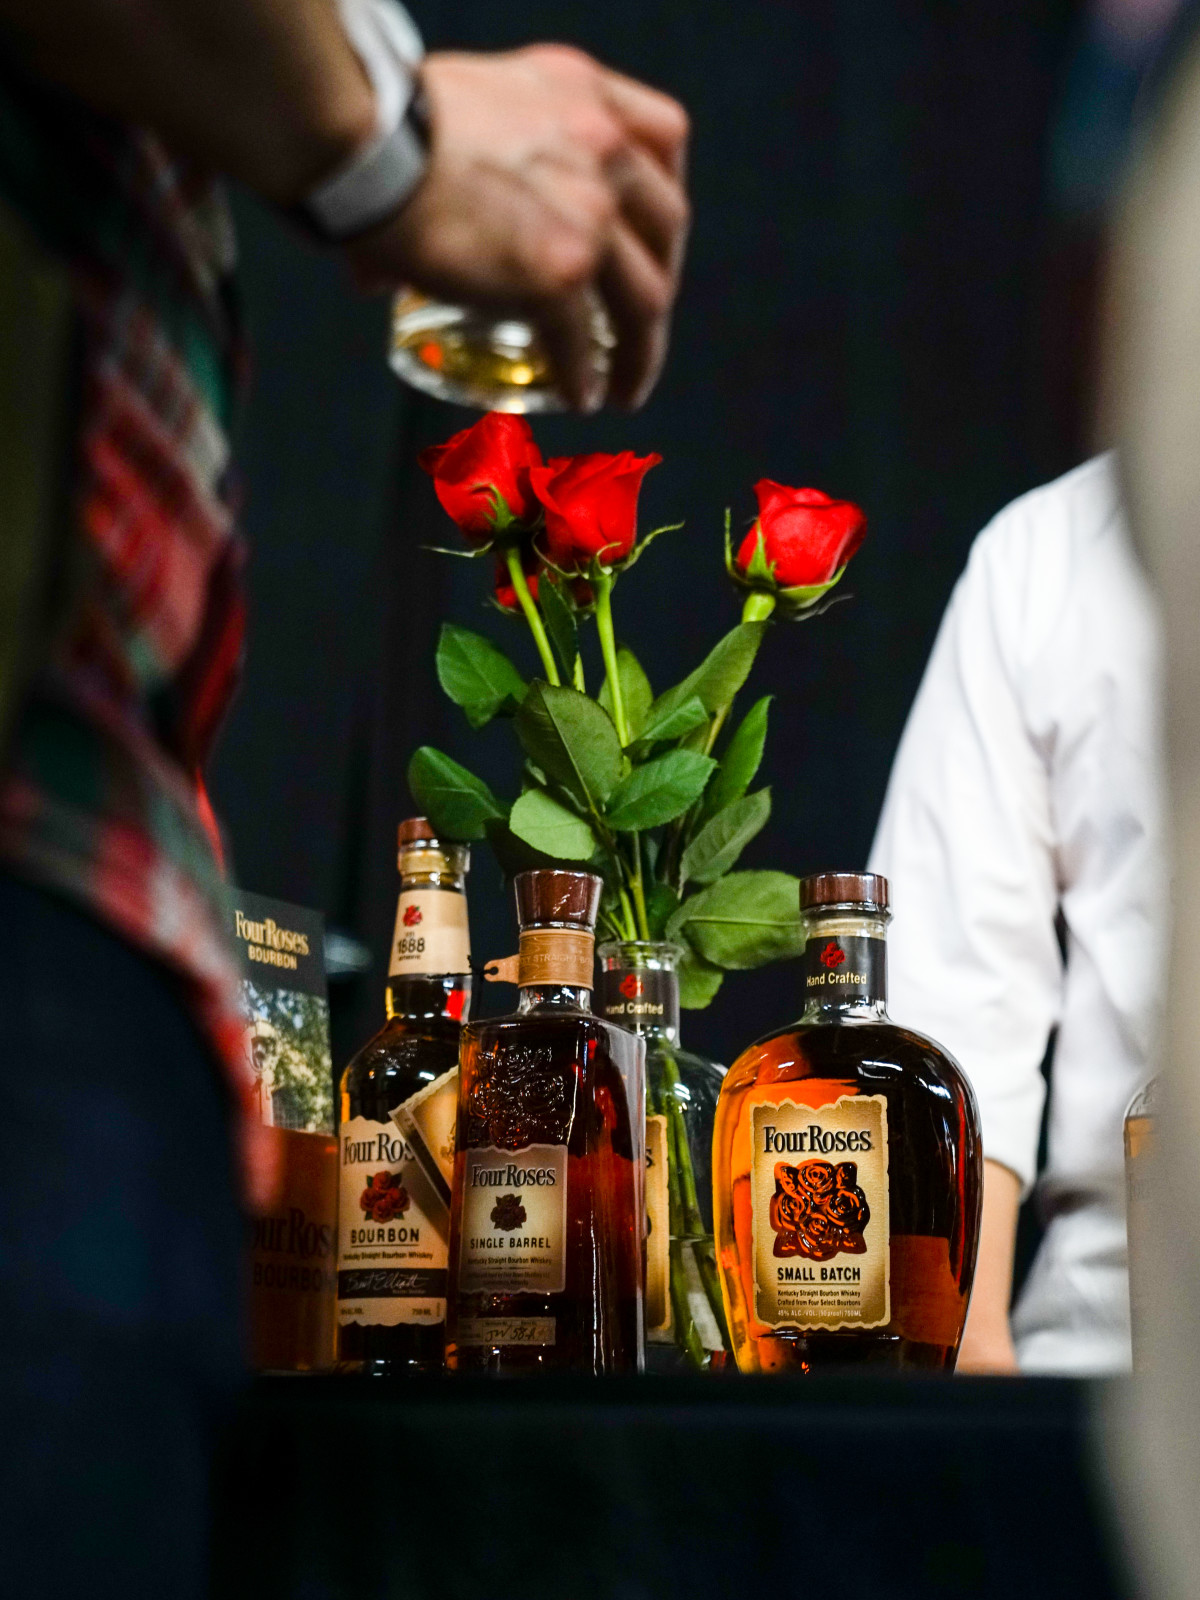 Four Roses bourbon bottles